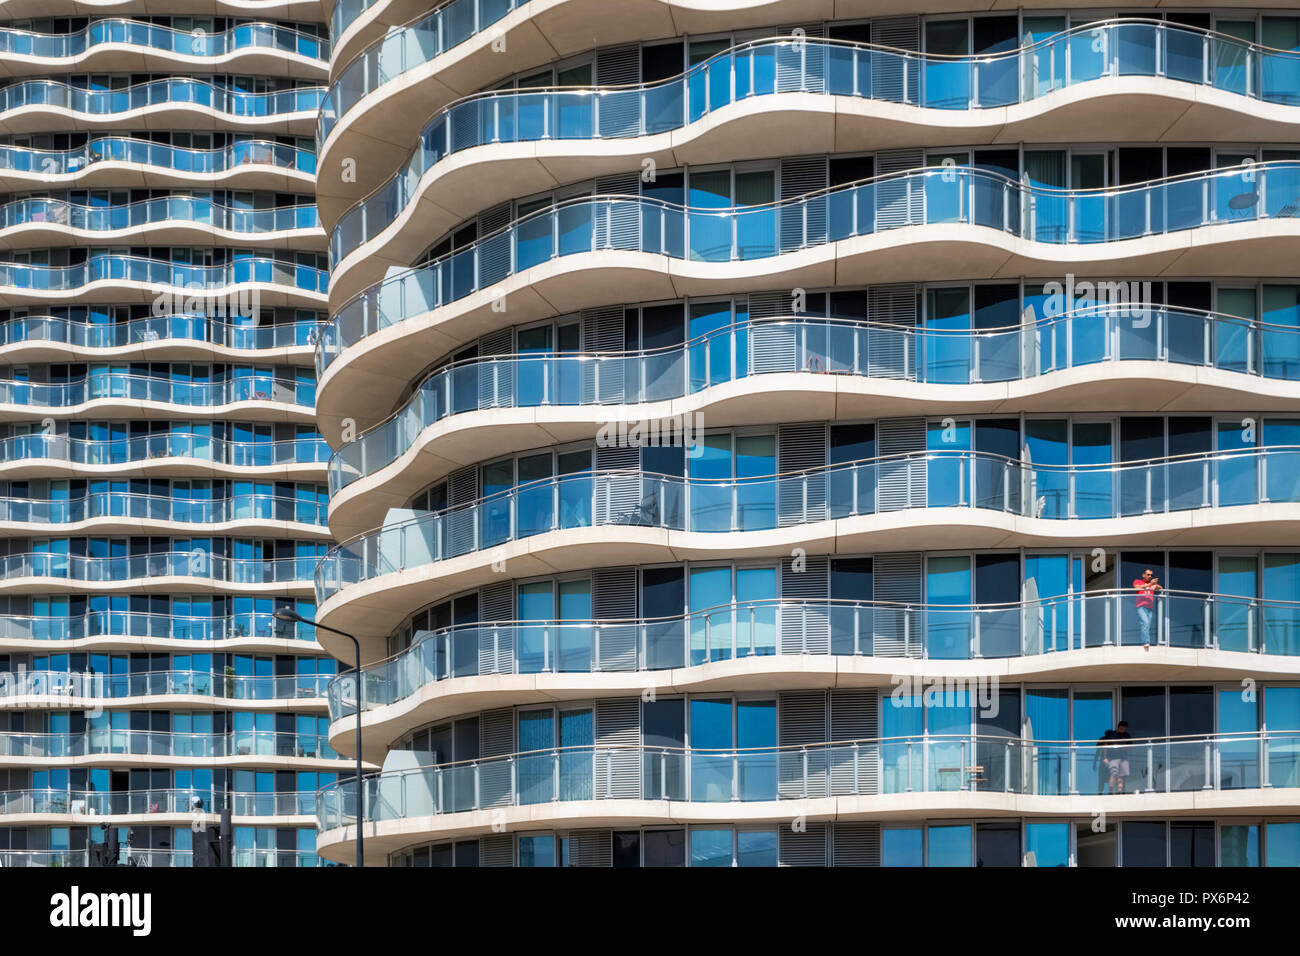 Detail of high-rise apartment buildings at Royal Victoria Dock, London, England, UK, modern architecture - Stock Image